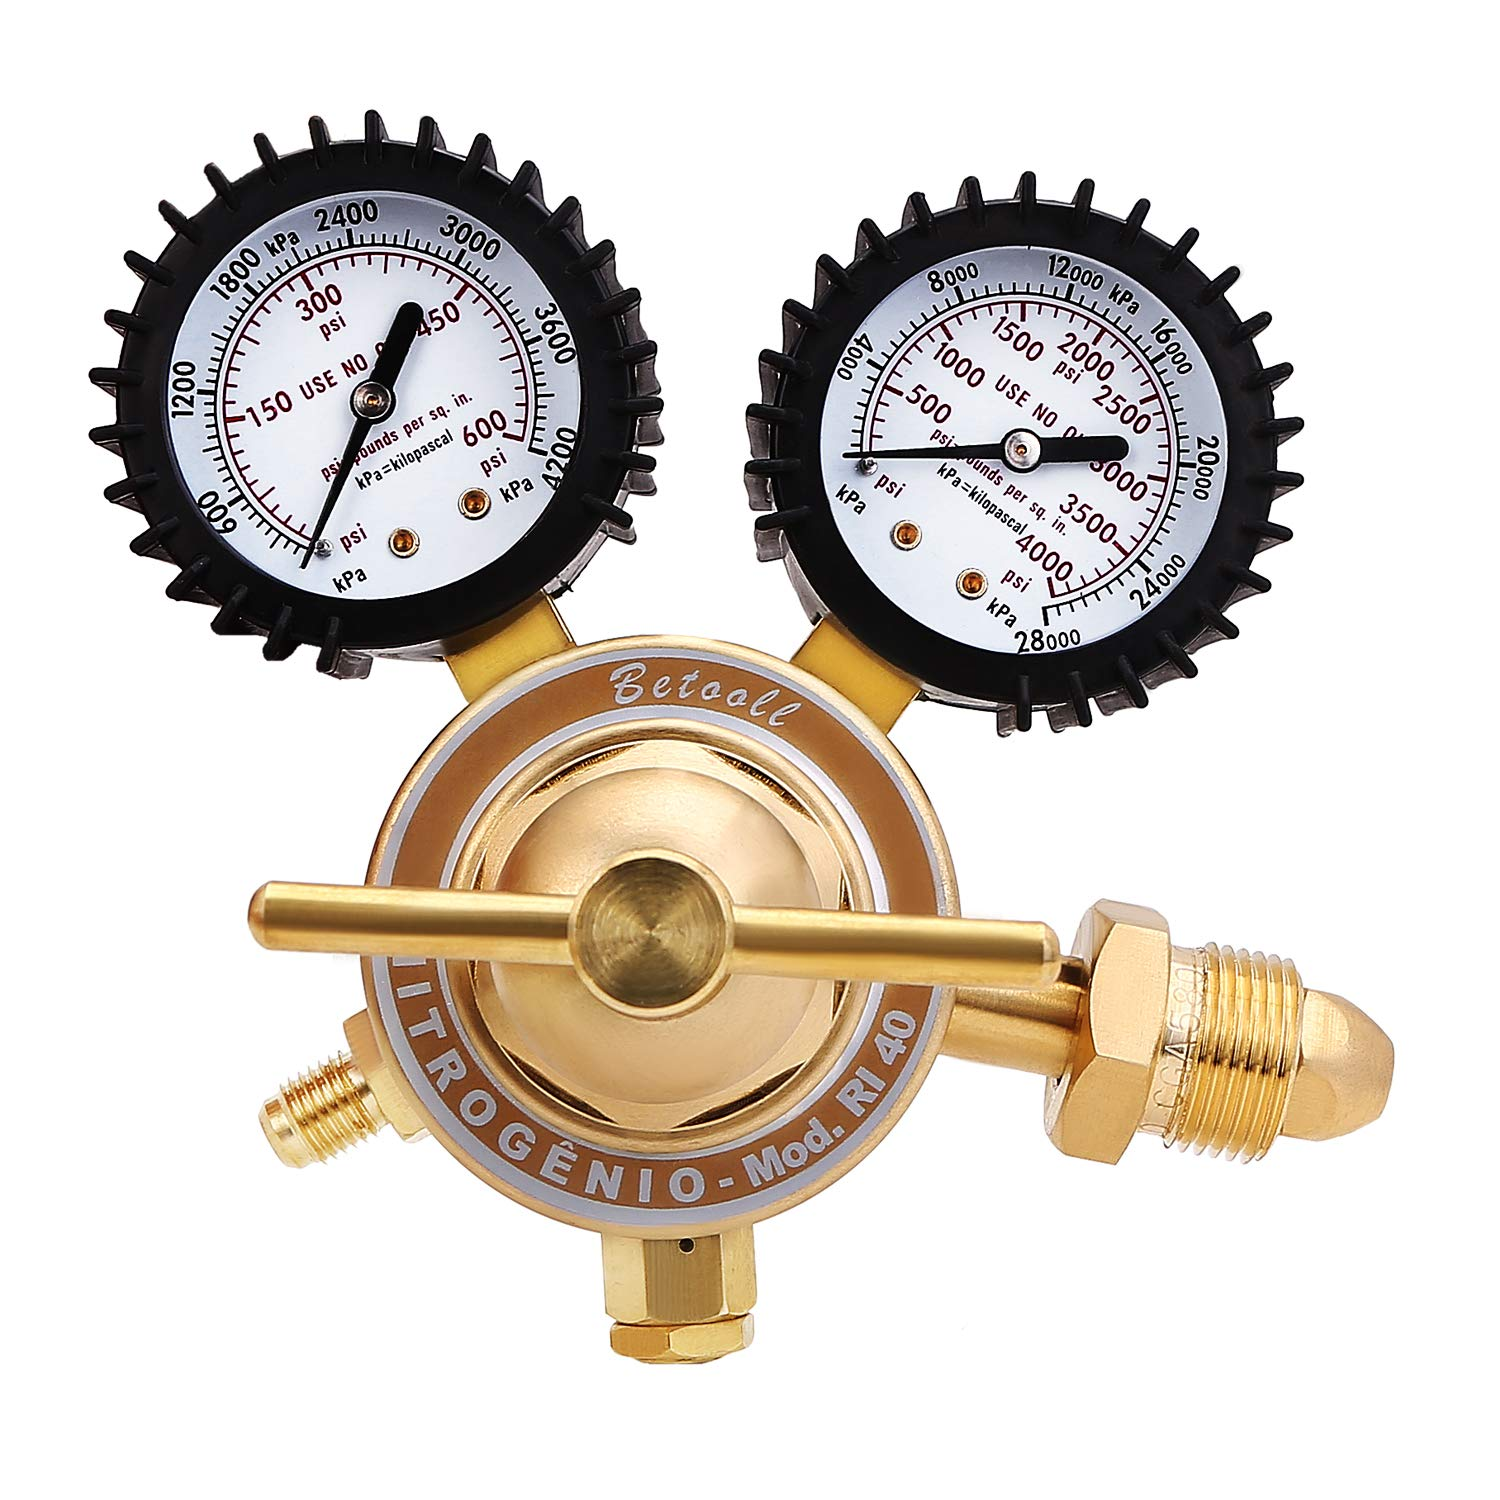 BETOOLL Nitrogen Regulator with 0-400 PSI Delivery Pressure Equipment Brass Inlet Outlet Connection Gauges by BETOOLL